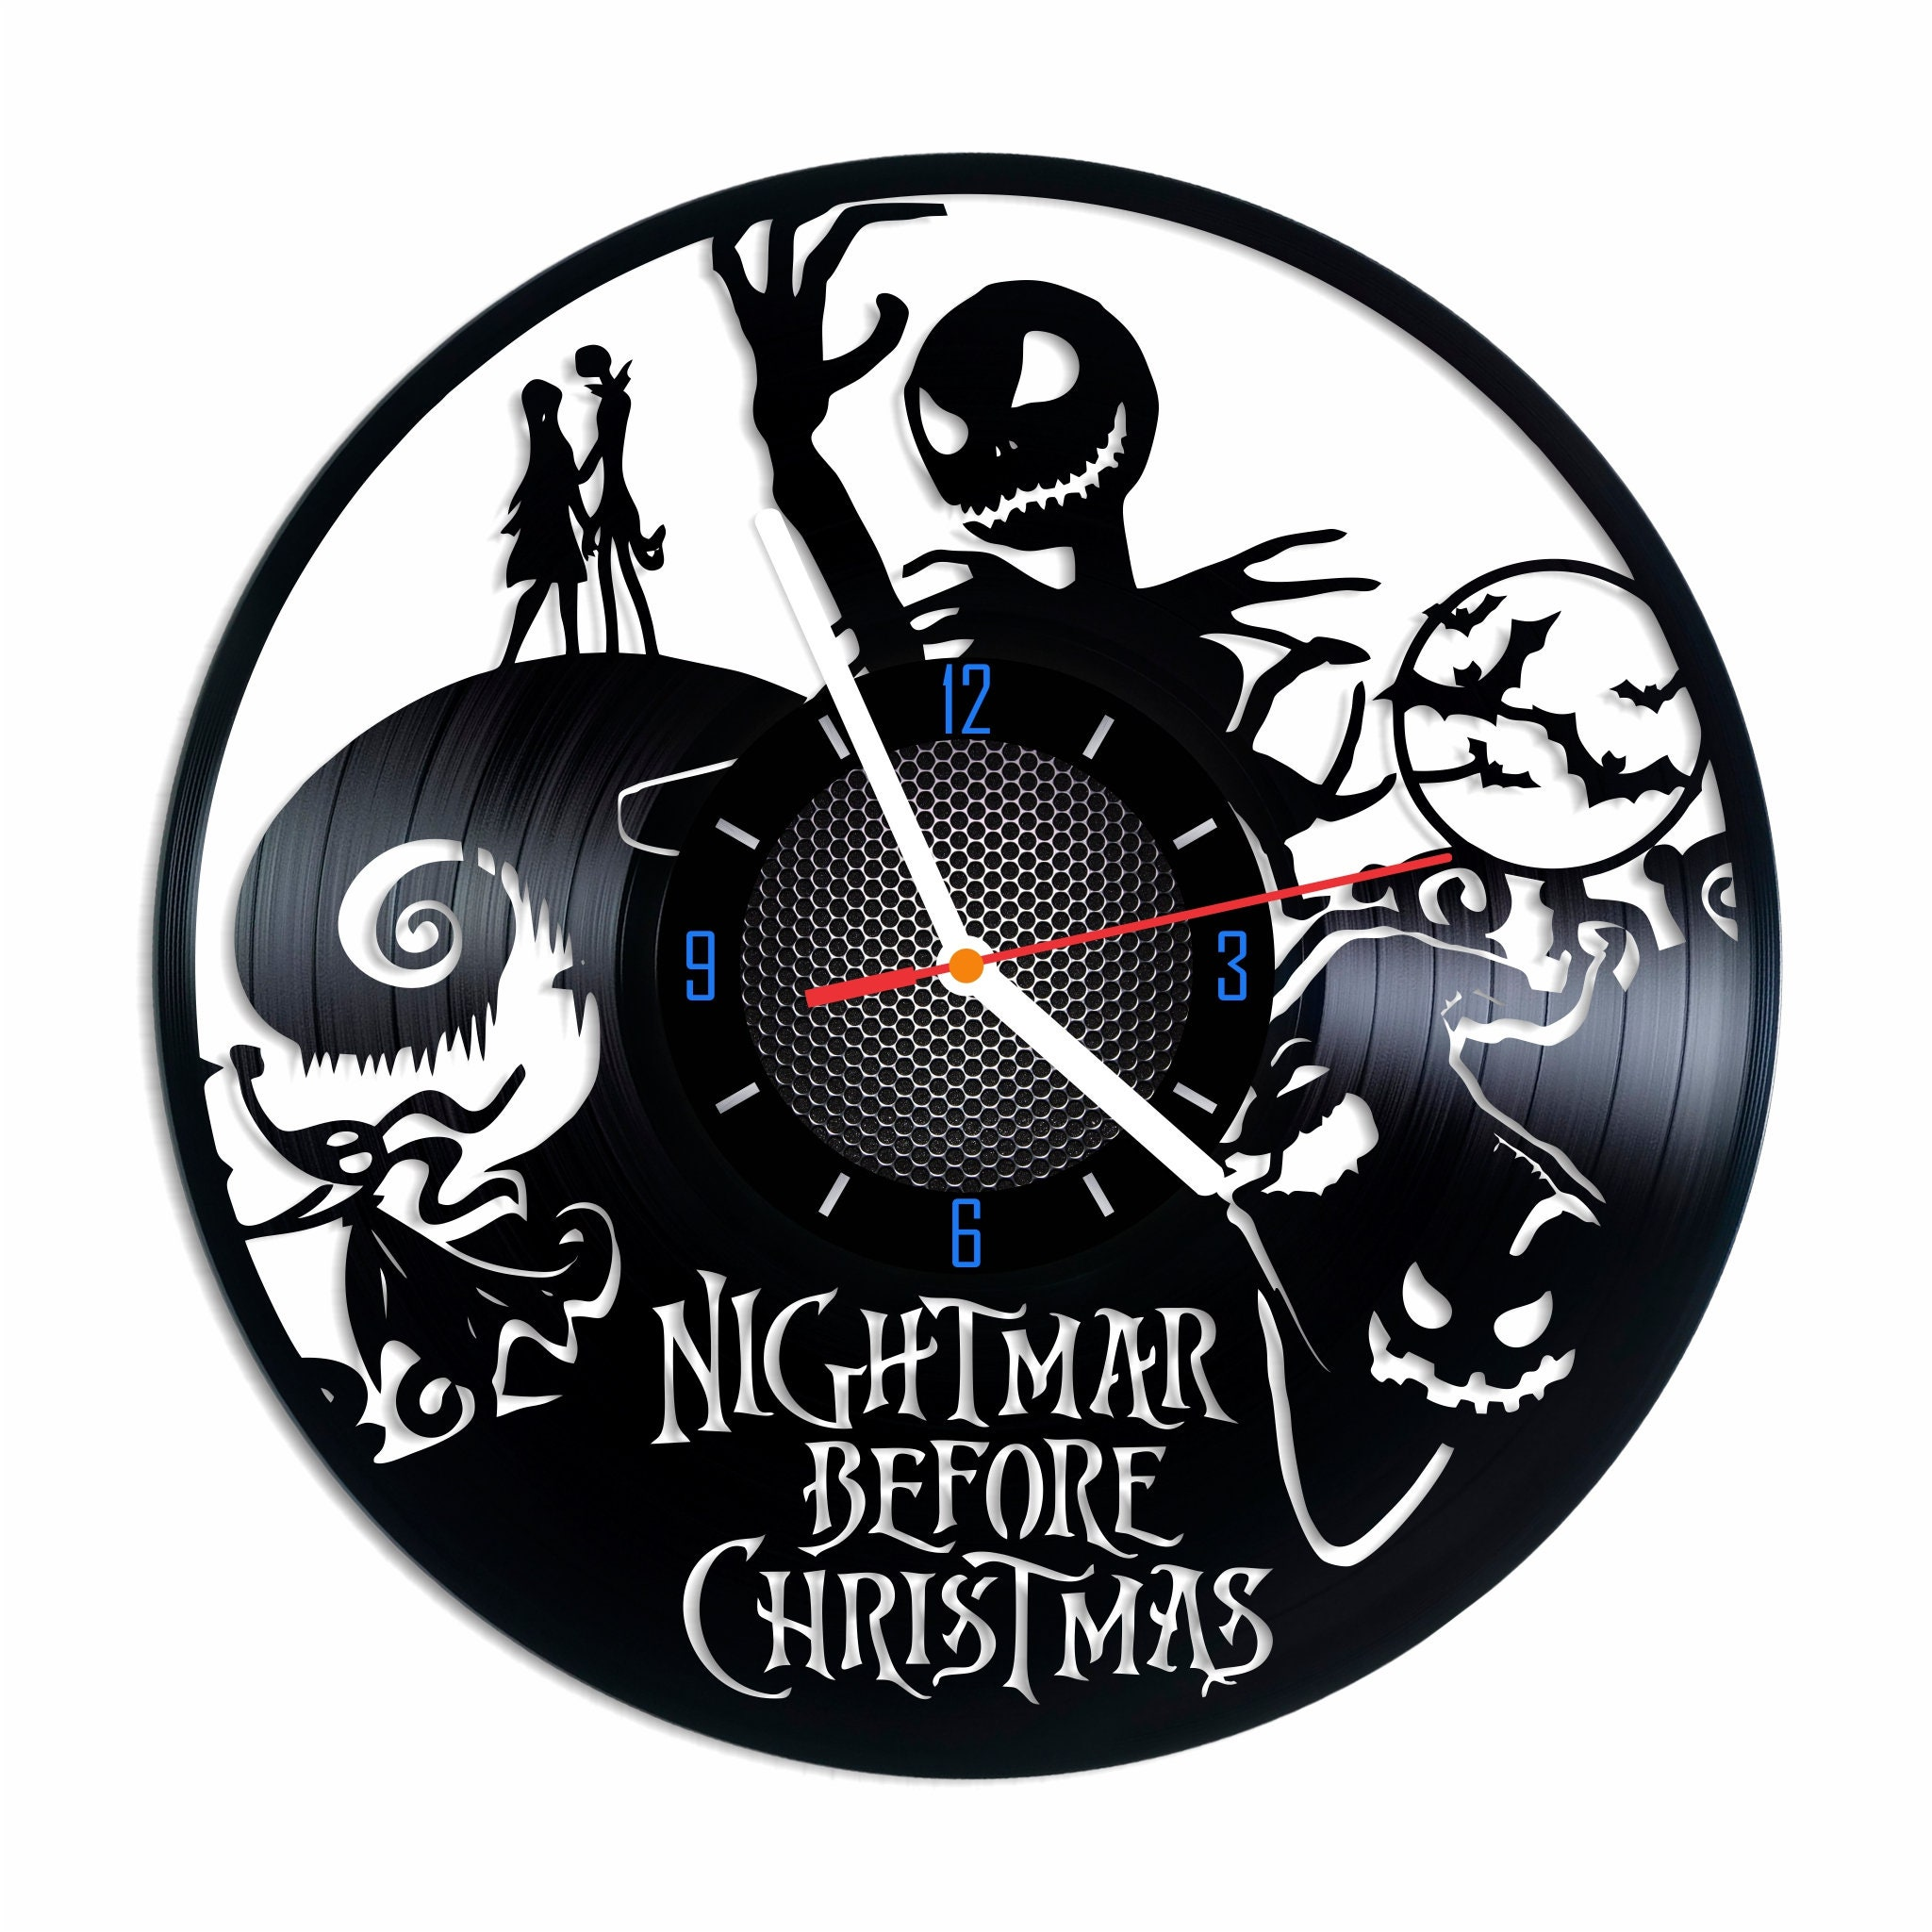 Nightmare before Christmas Jack Skellington Tim Burton Vinyl | Etsy